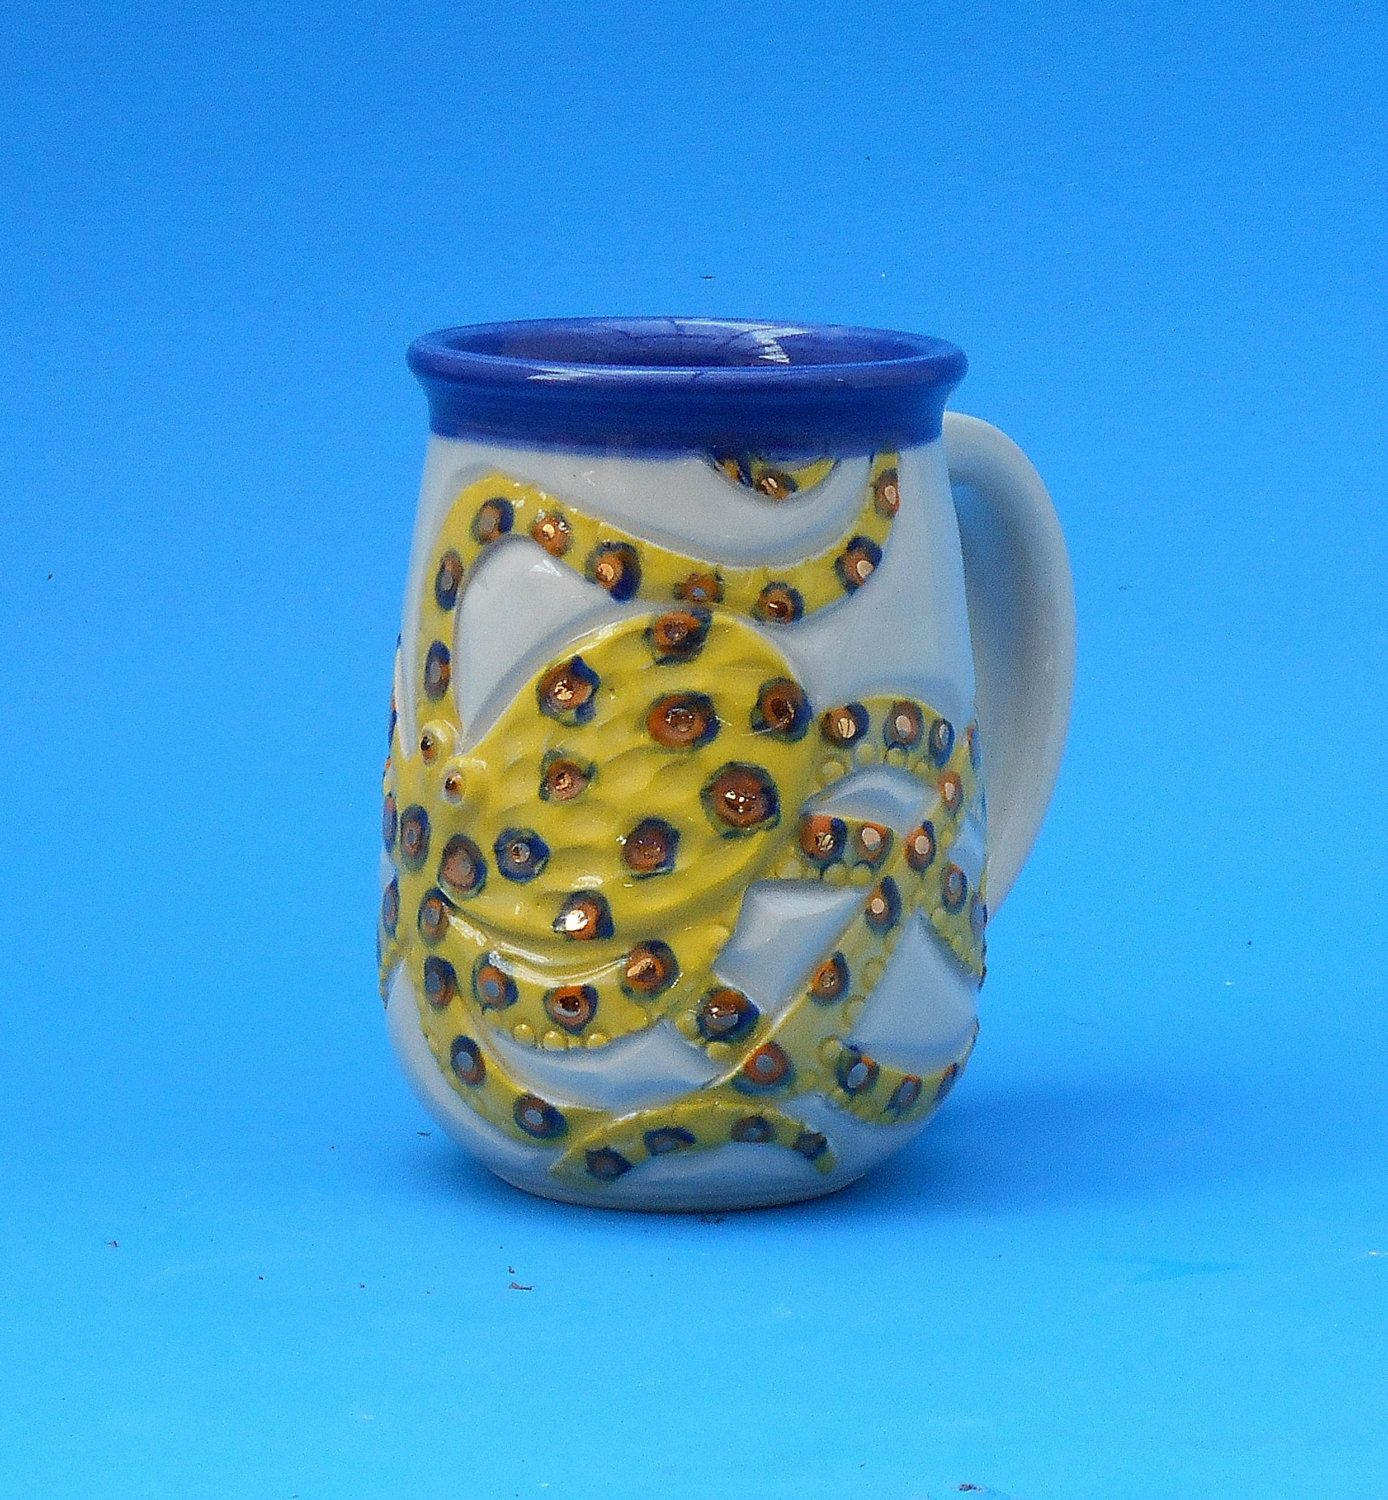 Octopus Blue Ring, Gold Bling, Hand Made Mug, Valentine's Day by CindySearles on Etsy